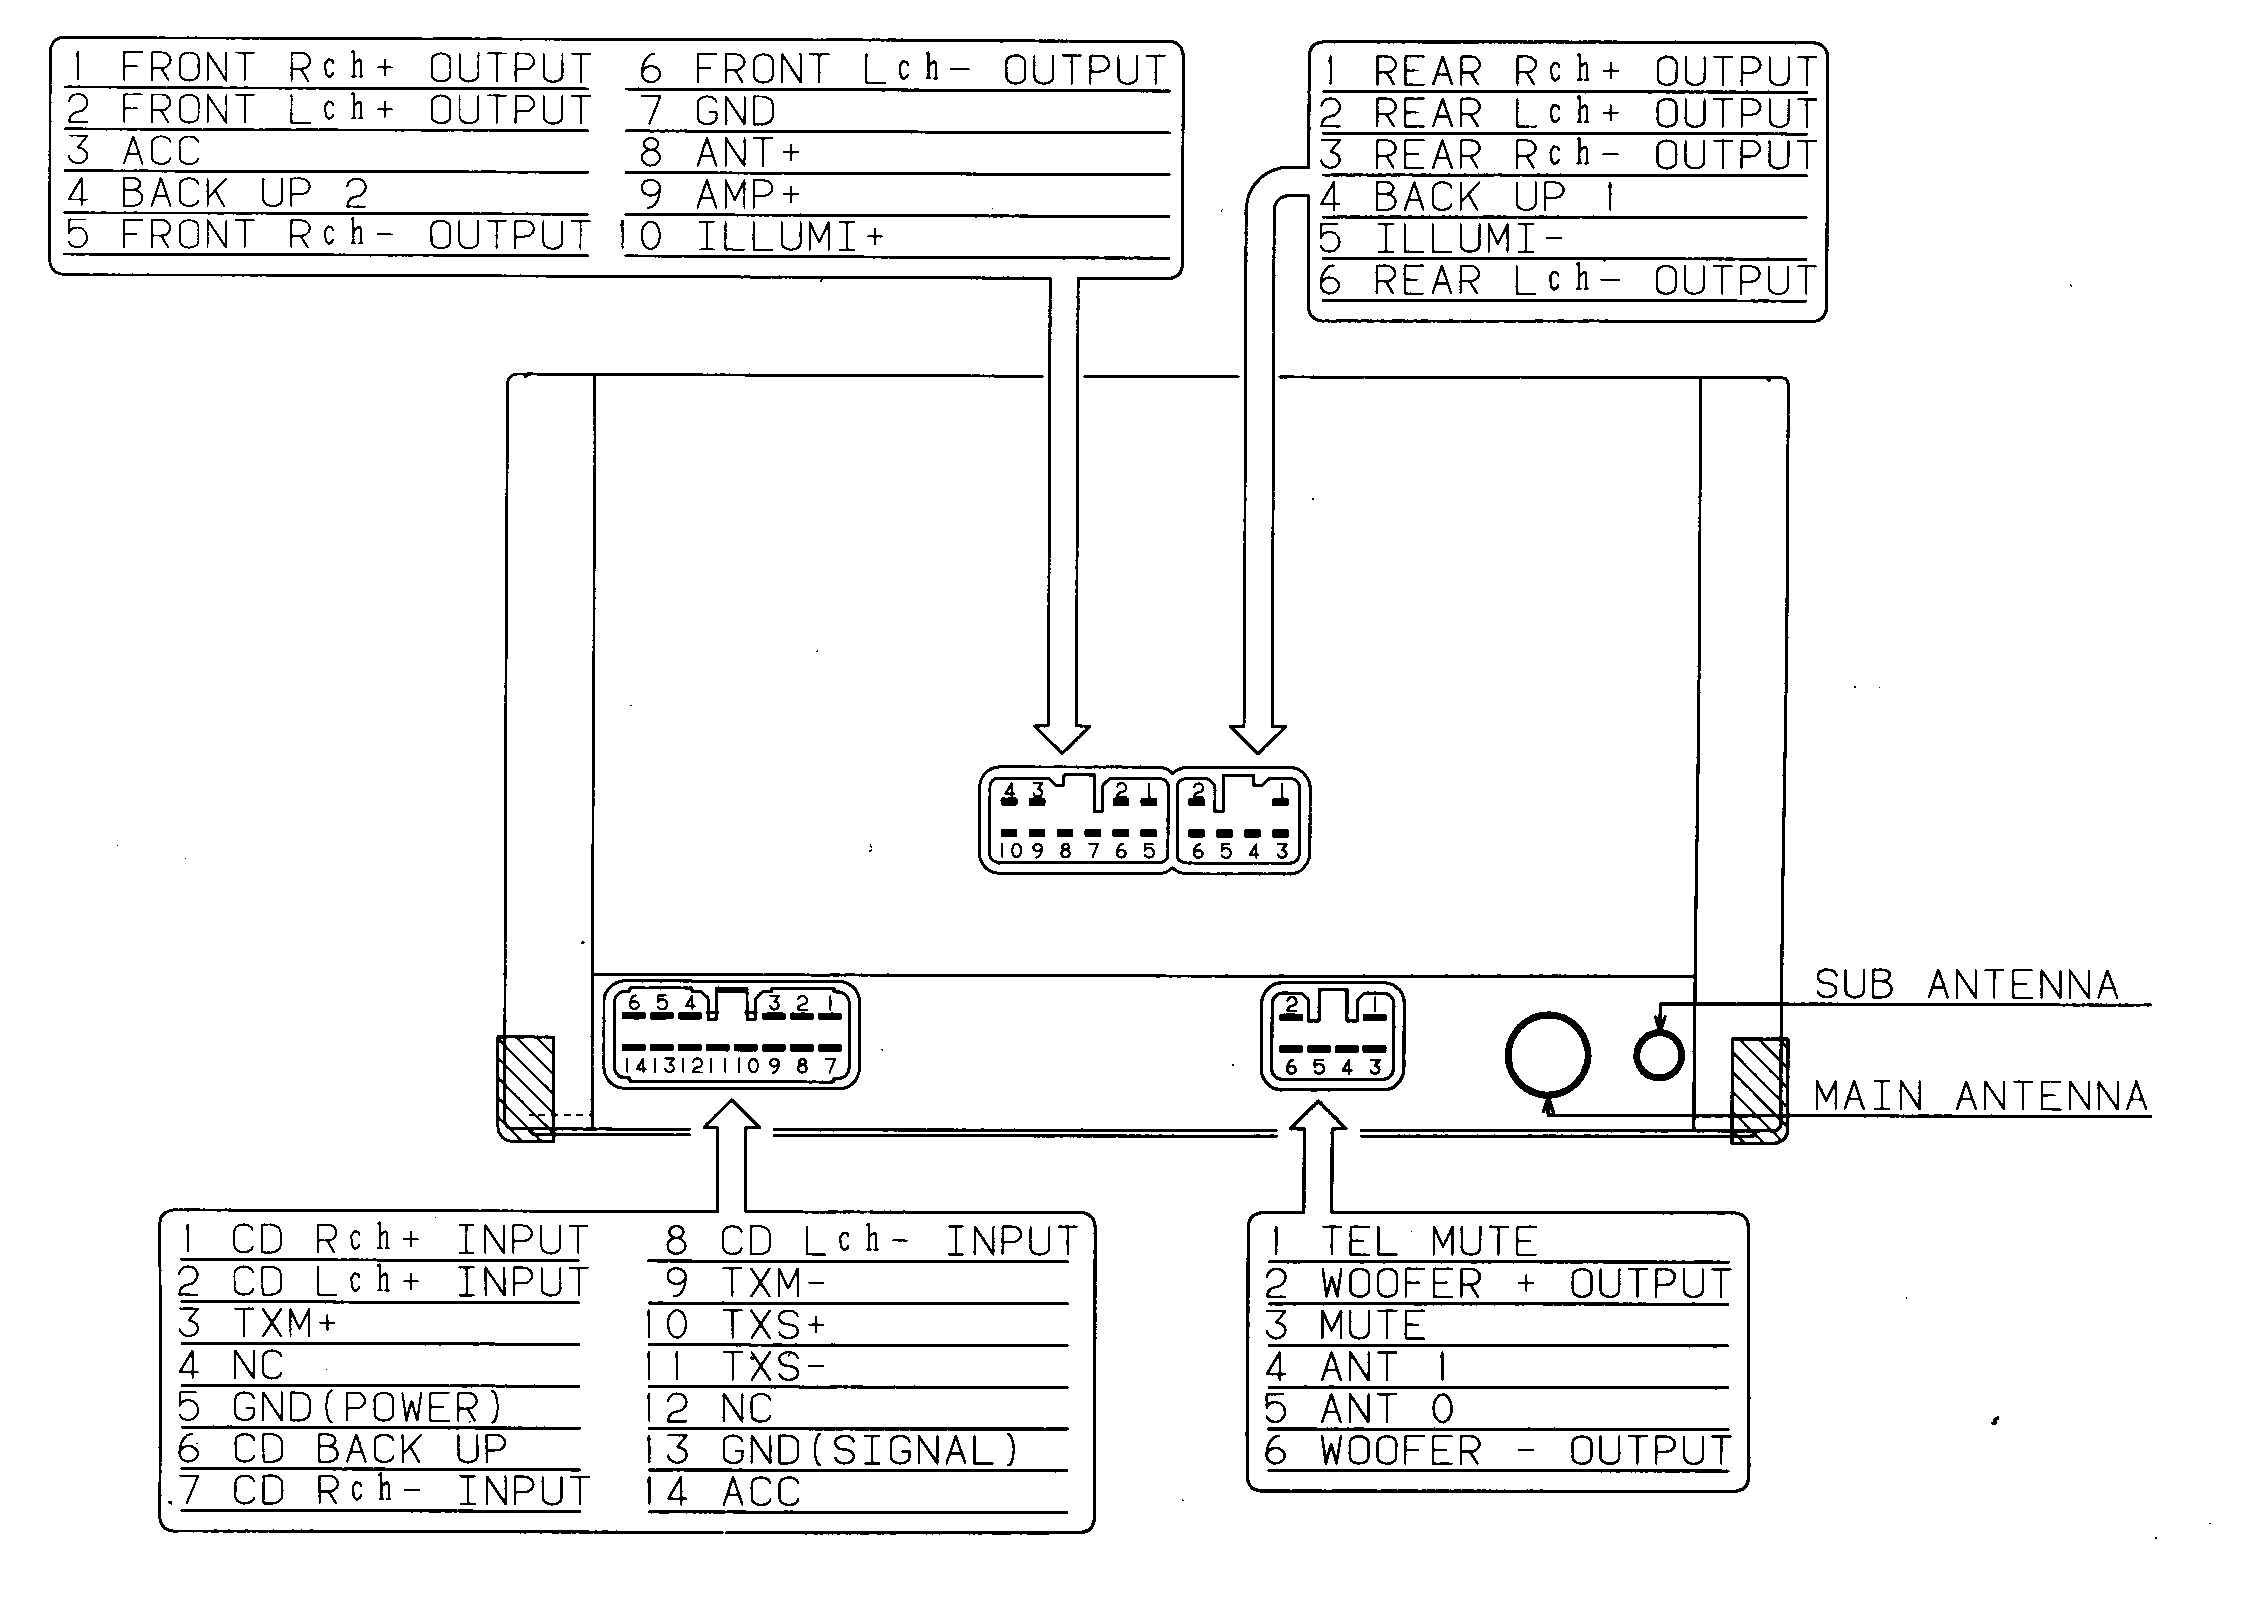 Lexus car stereo wiring diagram harness pinout connector wire lexus rx330 radio wiring diagram lexus rx330 parts diagram  at gsmportal.co